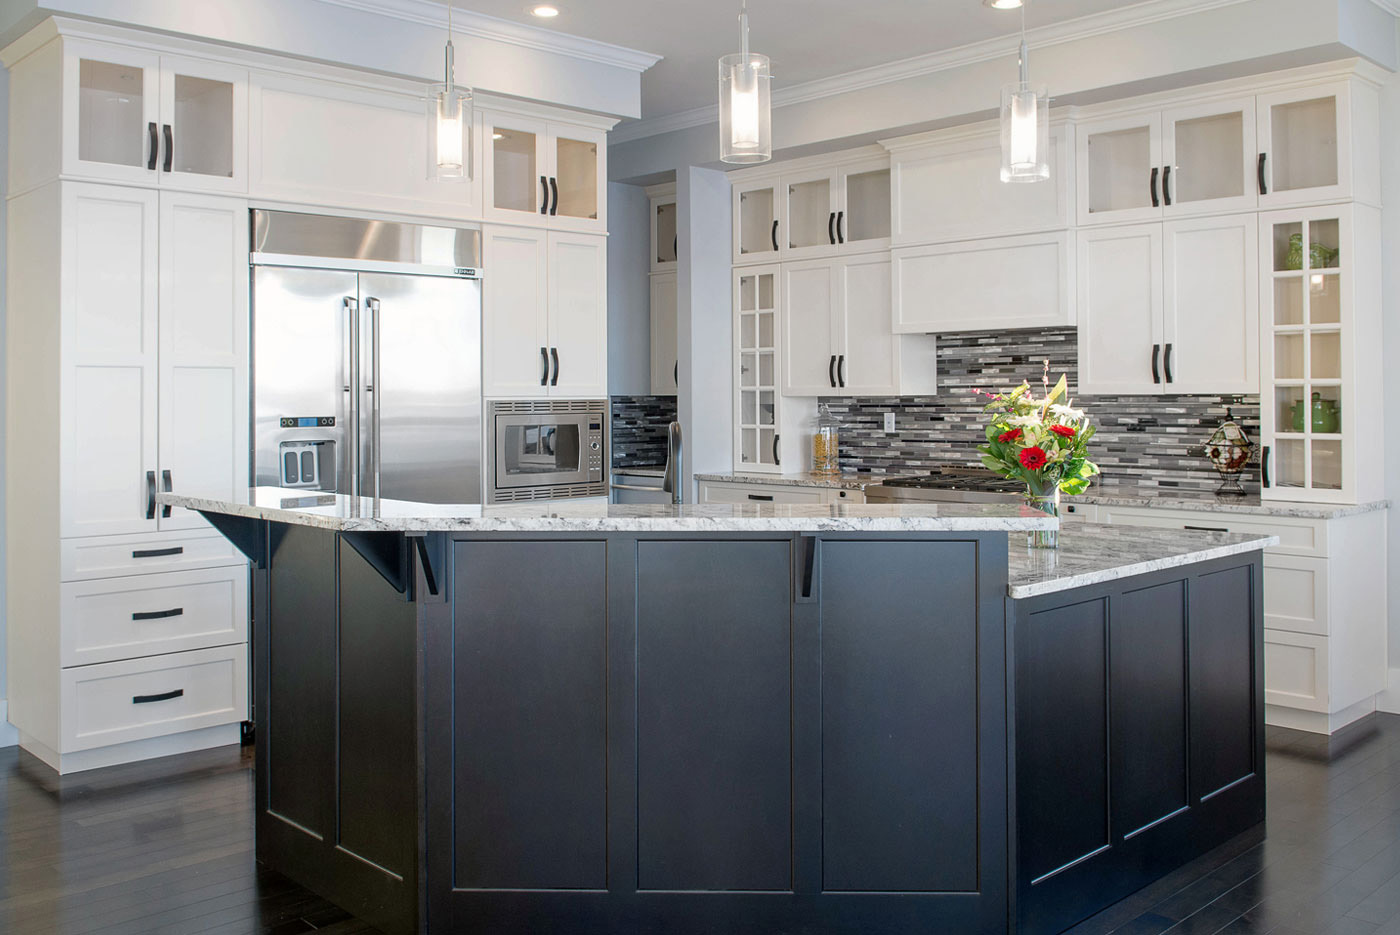 Beautiful contemporary kitchen. Two-toned cabinetry with white painted maple cabinets on the perimeter and dark stained maple cabinets on the island, available at Superior Cabinets.